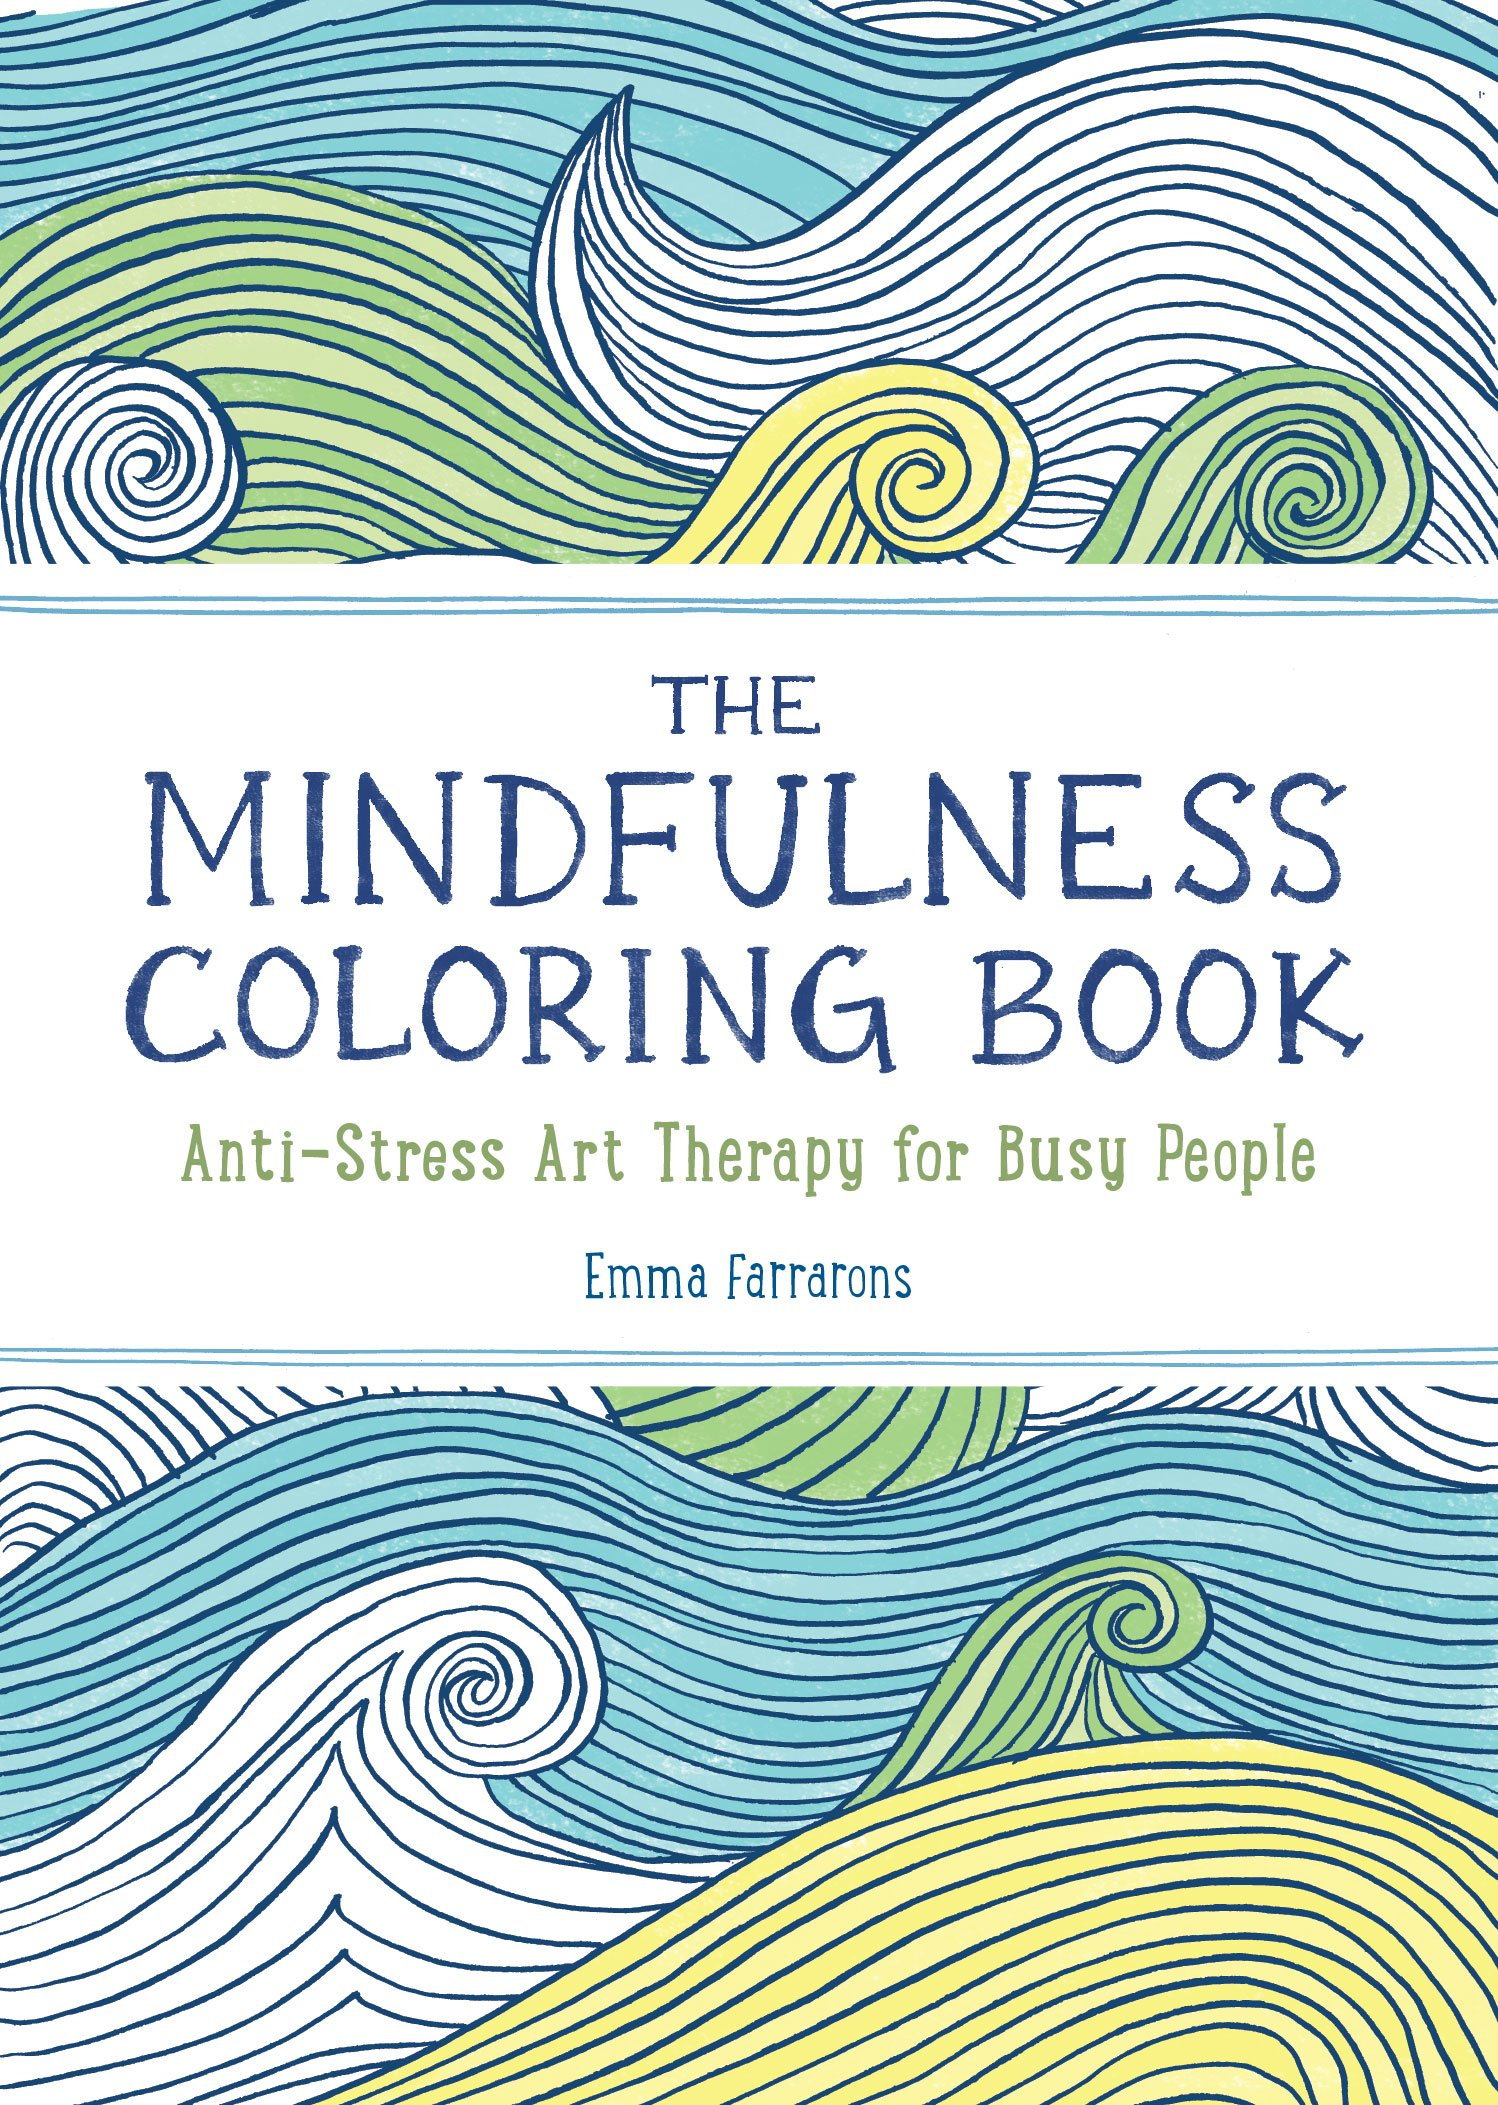 Zen coloring books for adults app - The Mindfulness Coloring Book Anti Stress Art Therapy For Busy People The Mindfulness Coloring Series Emma Farrarons 9781615192823 Amazon Com Books